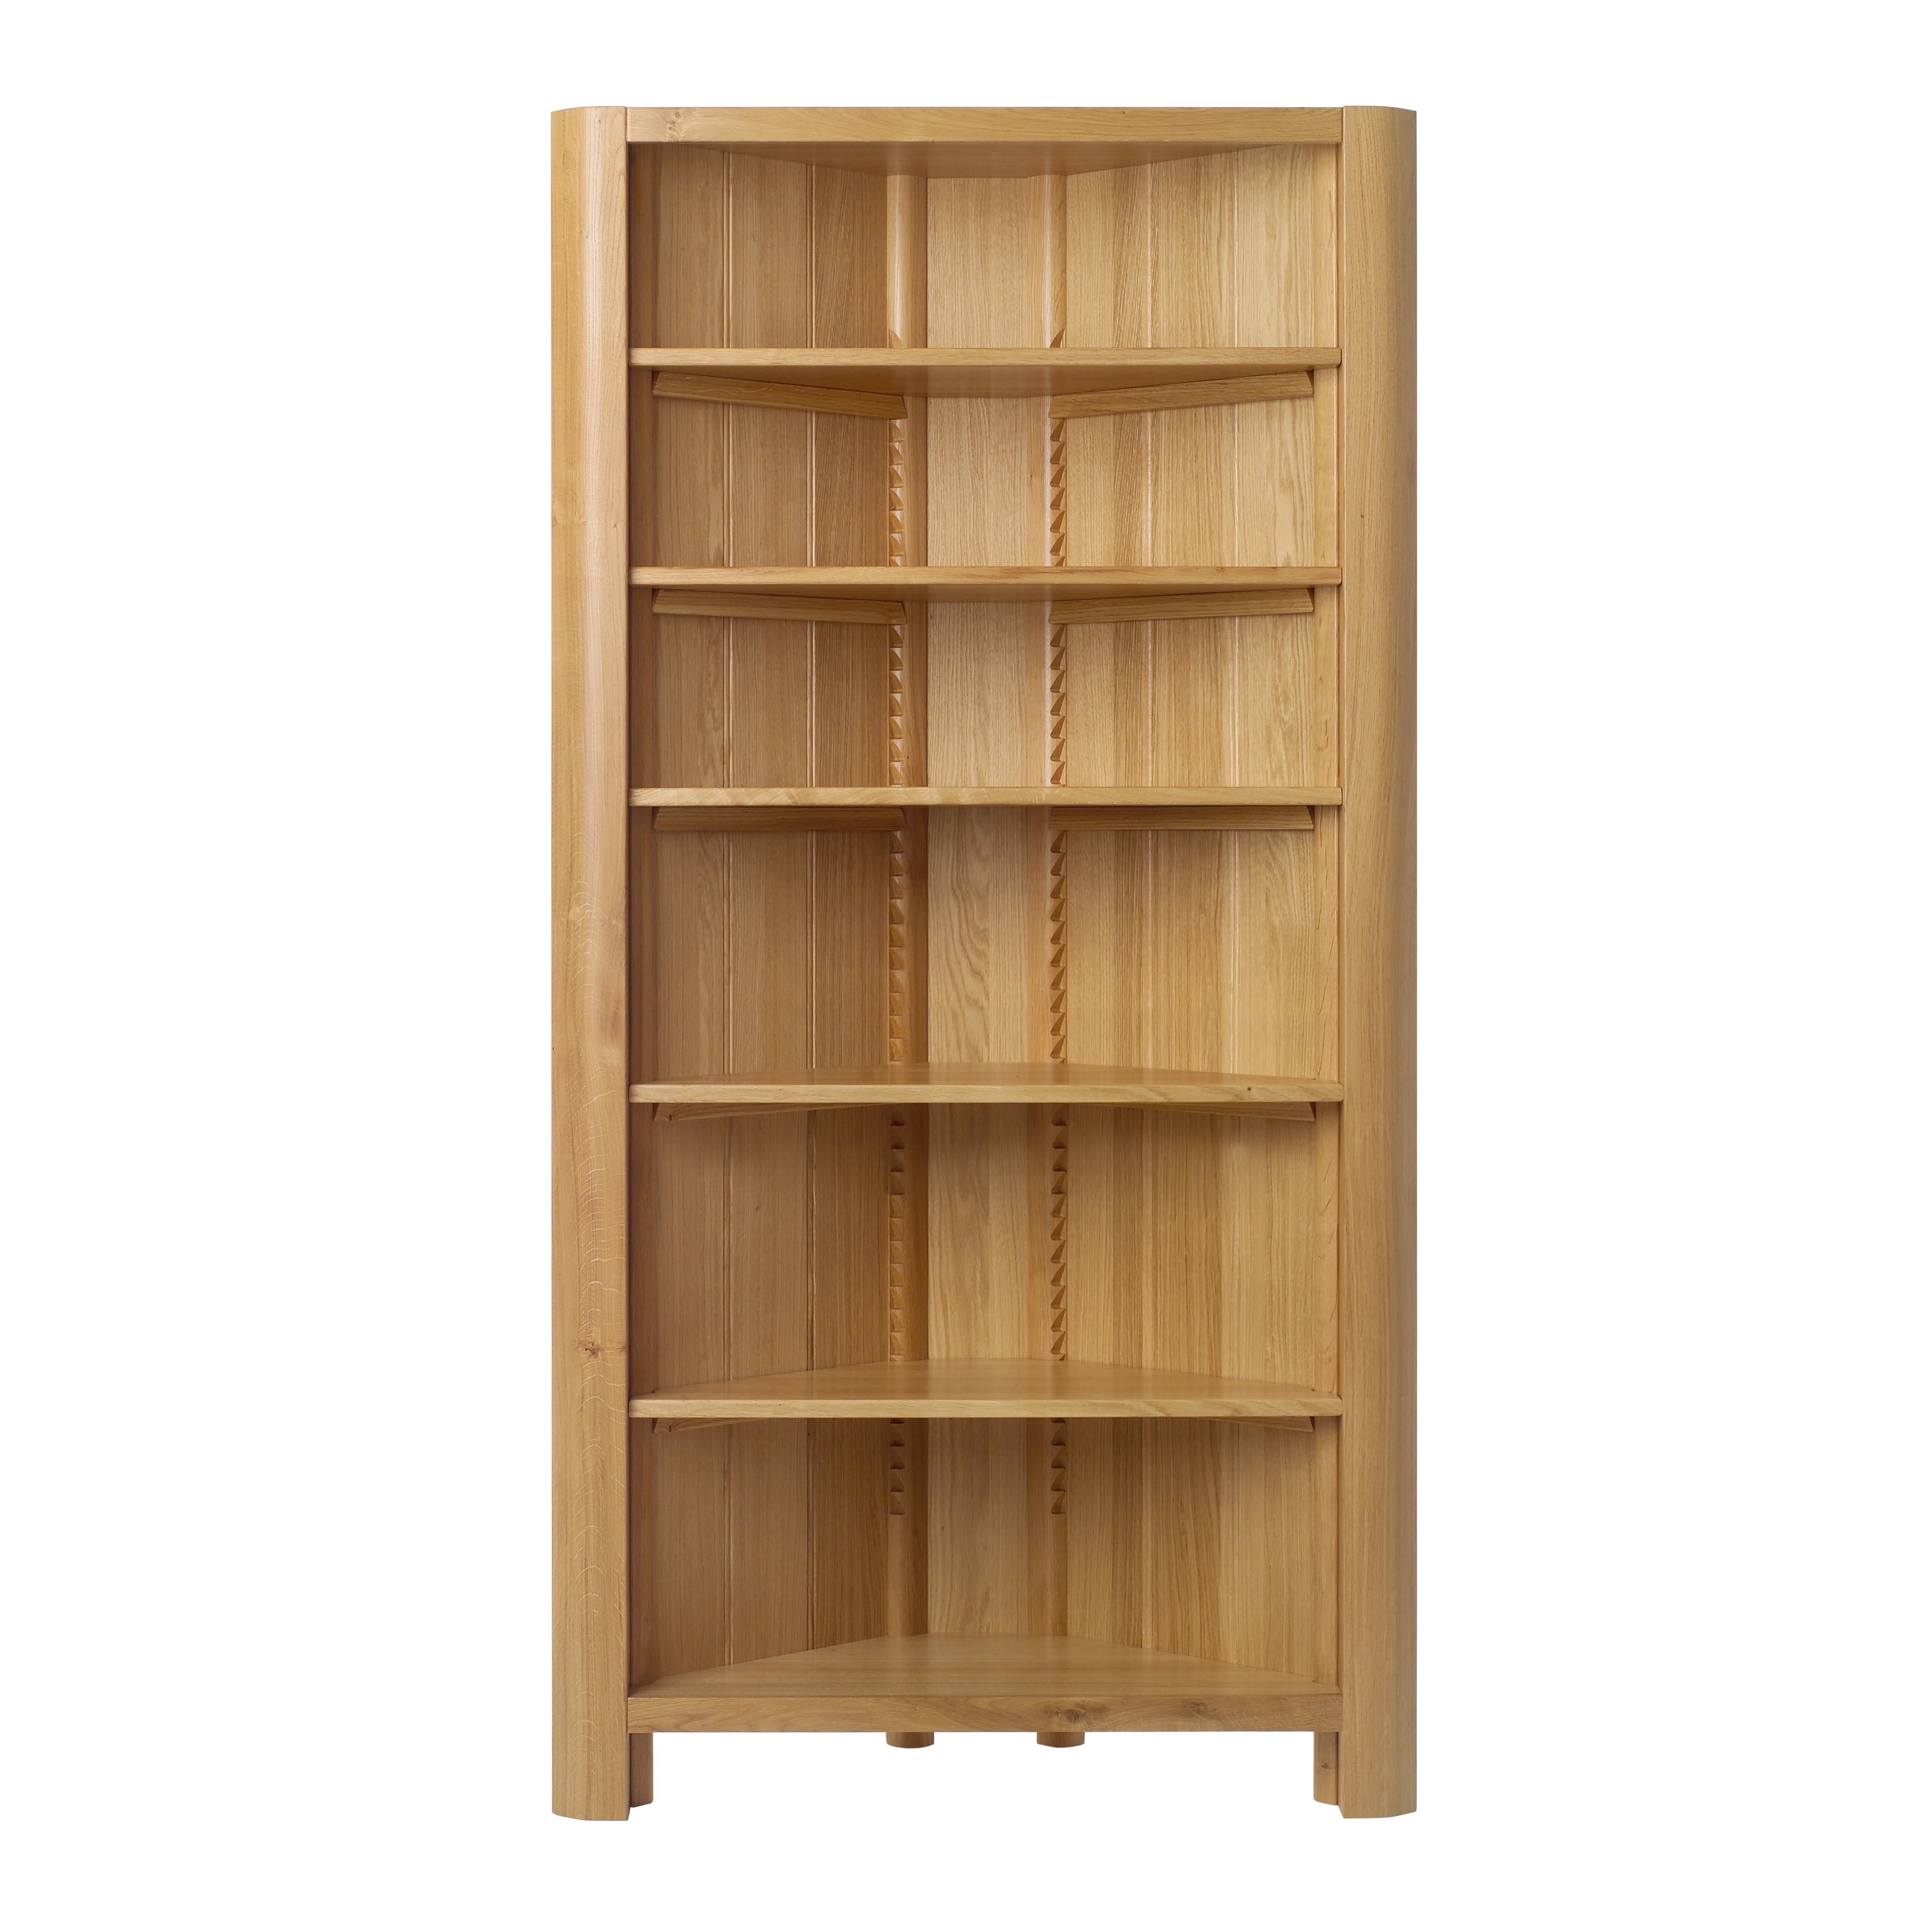 Tall White Corner Bookshelf